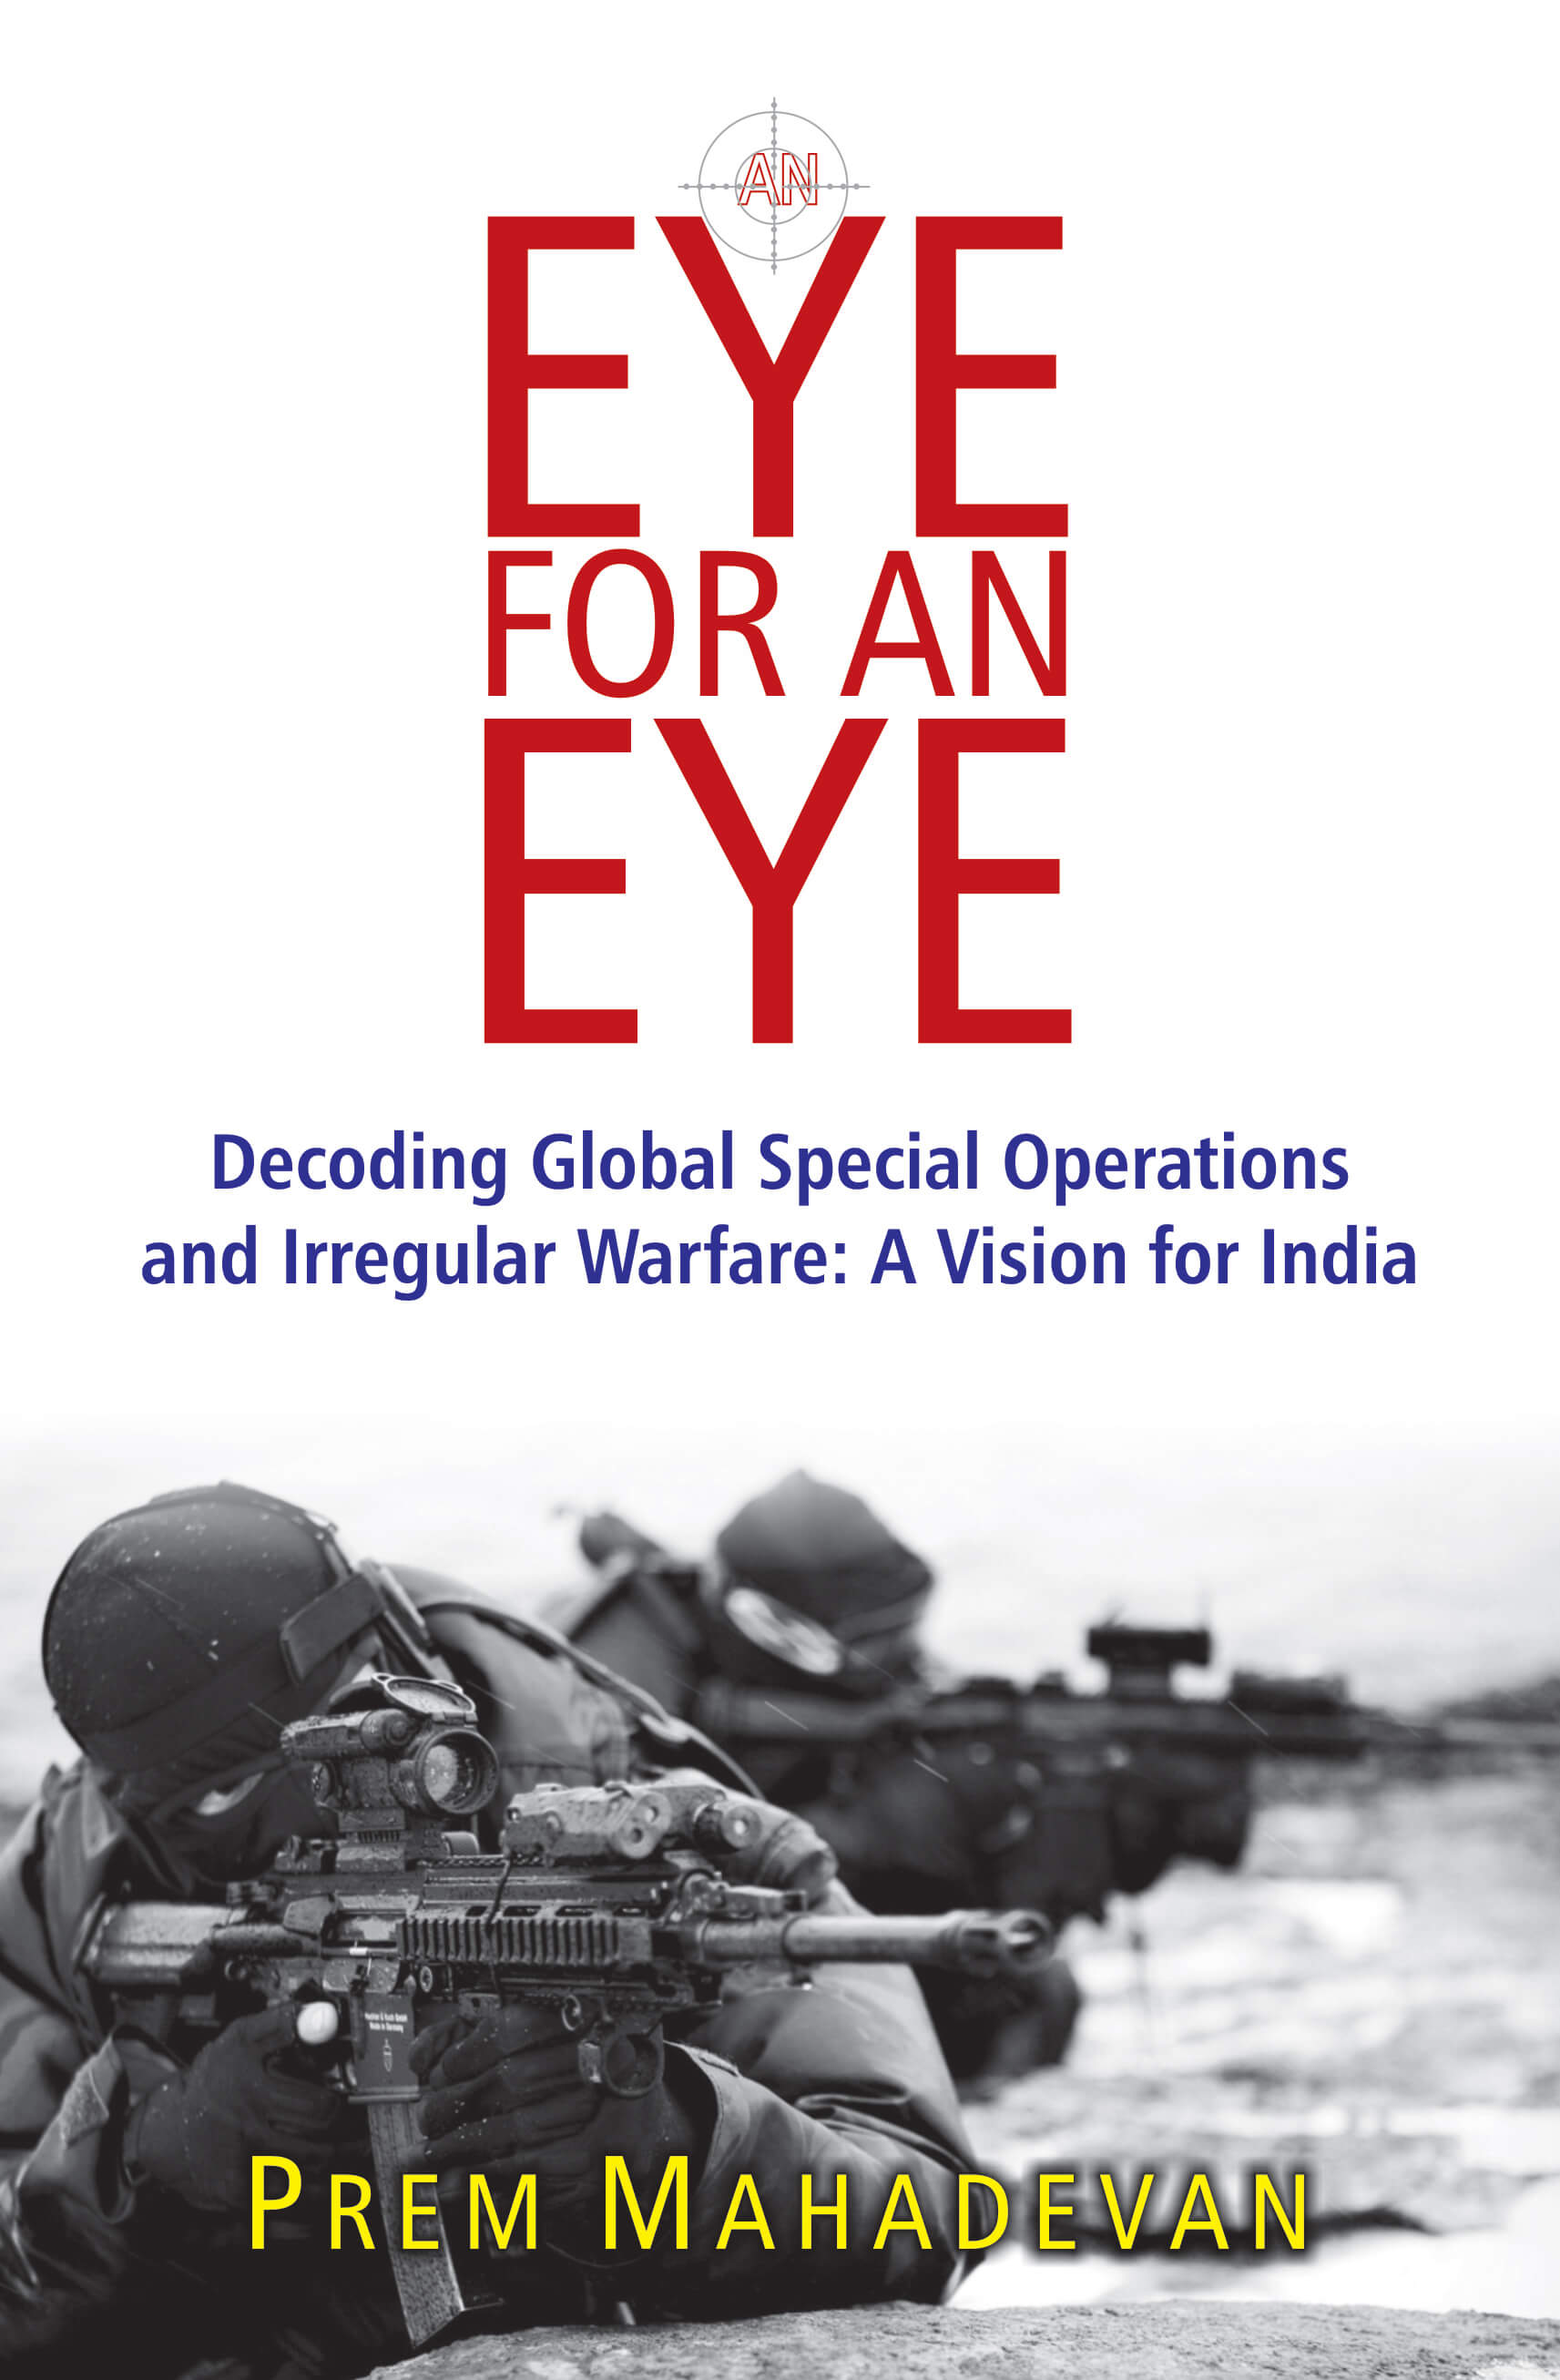 An Eye for an Eye: Decoding Global Special Operations and Irregular Warfare - A Vision for India